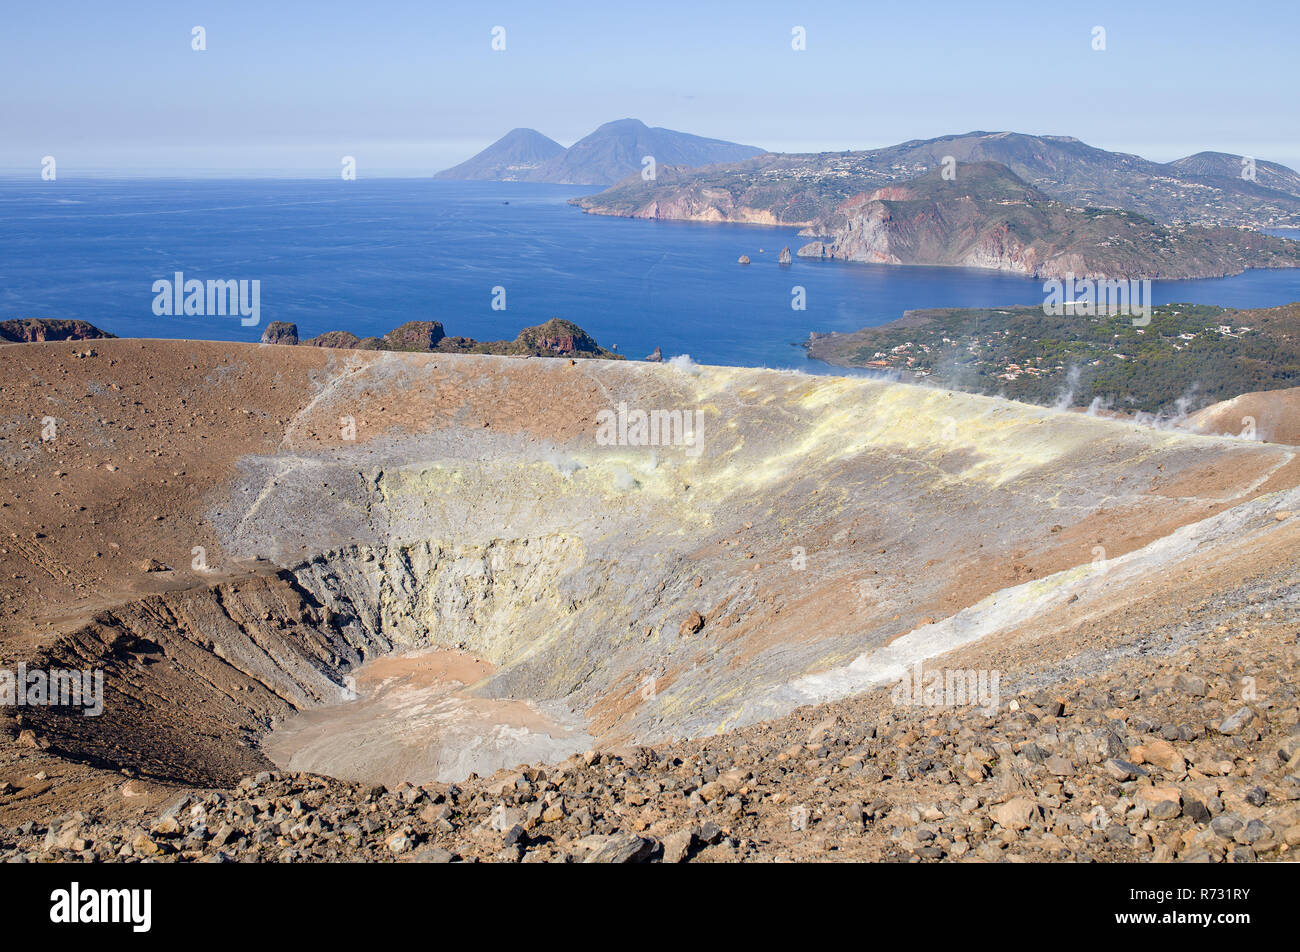 The volcano crater, Aeolian Islands. In the background Mediterranean Sea and blue sky. Area of Sicily, Italy. - Stock Image